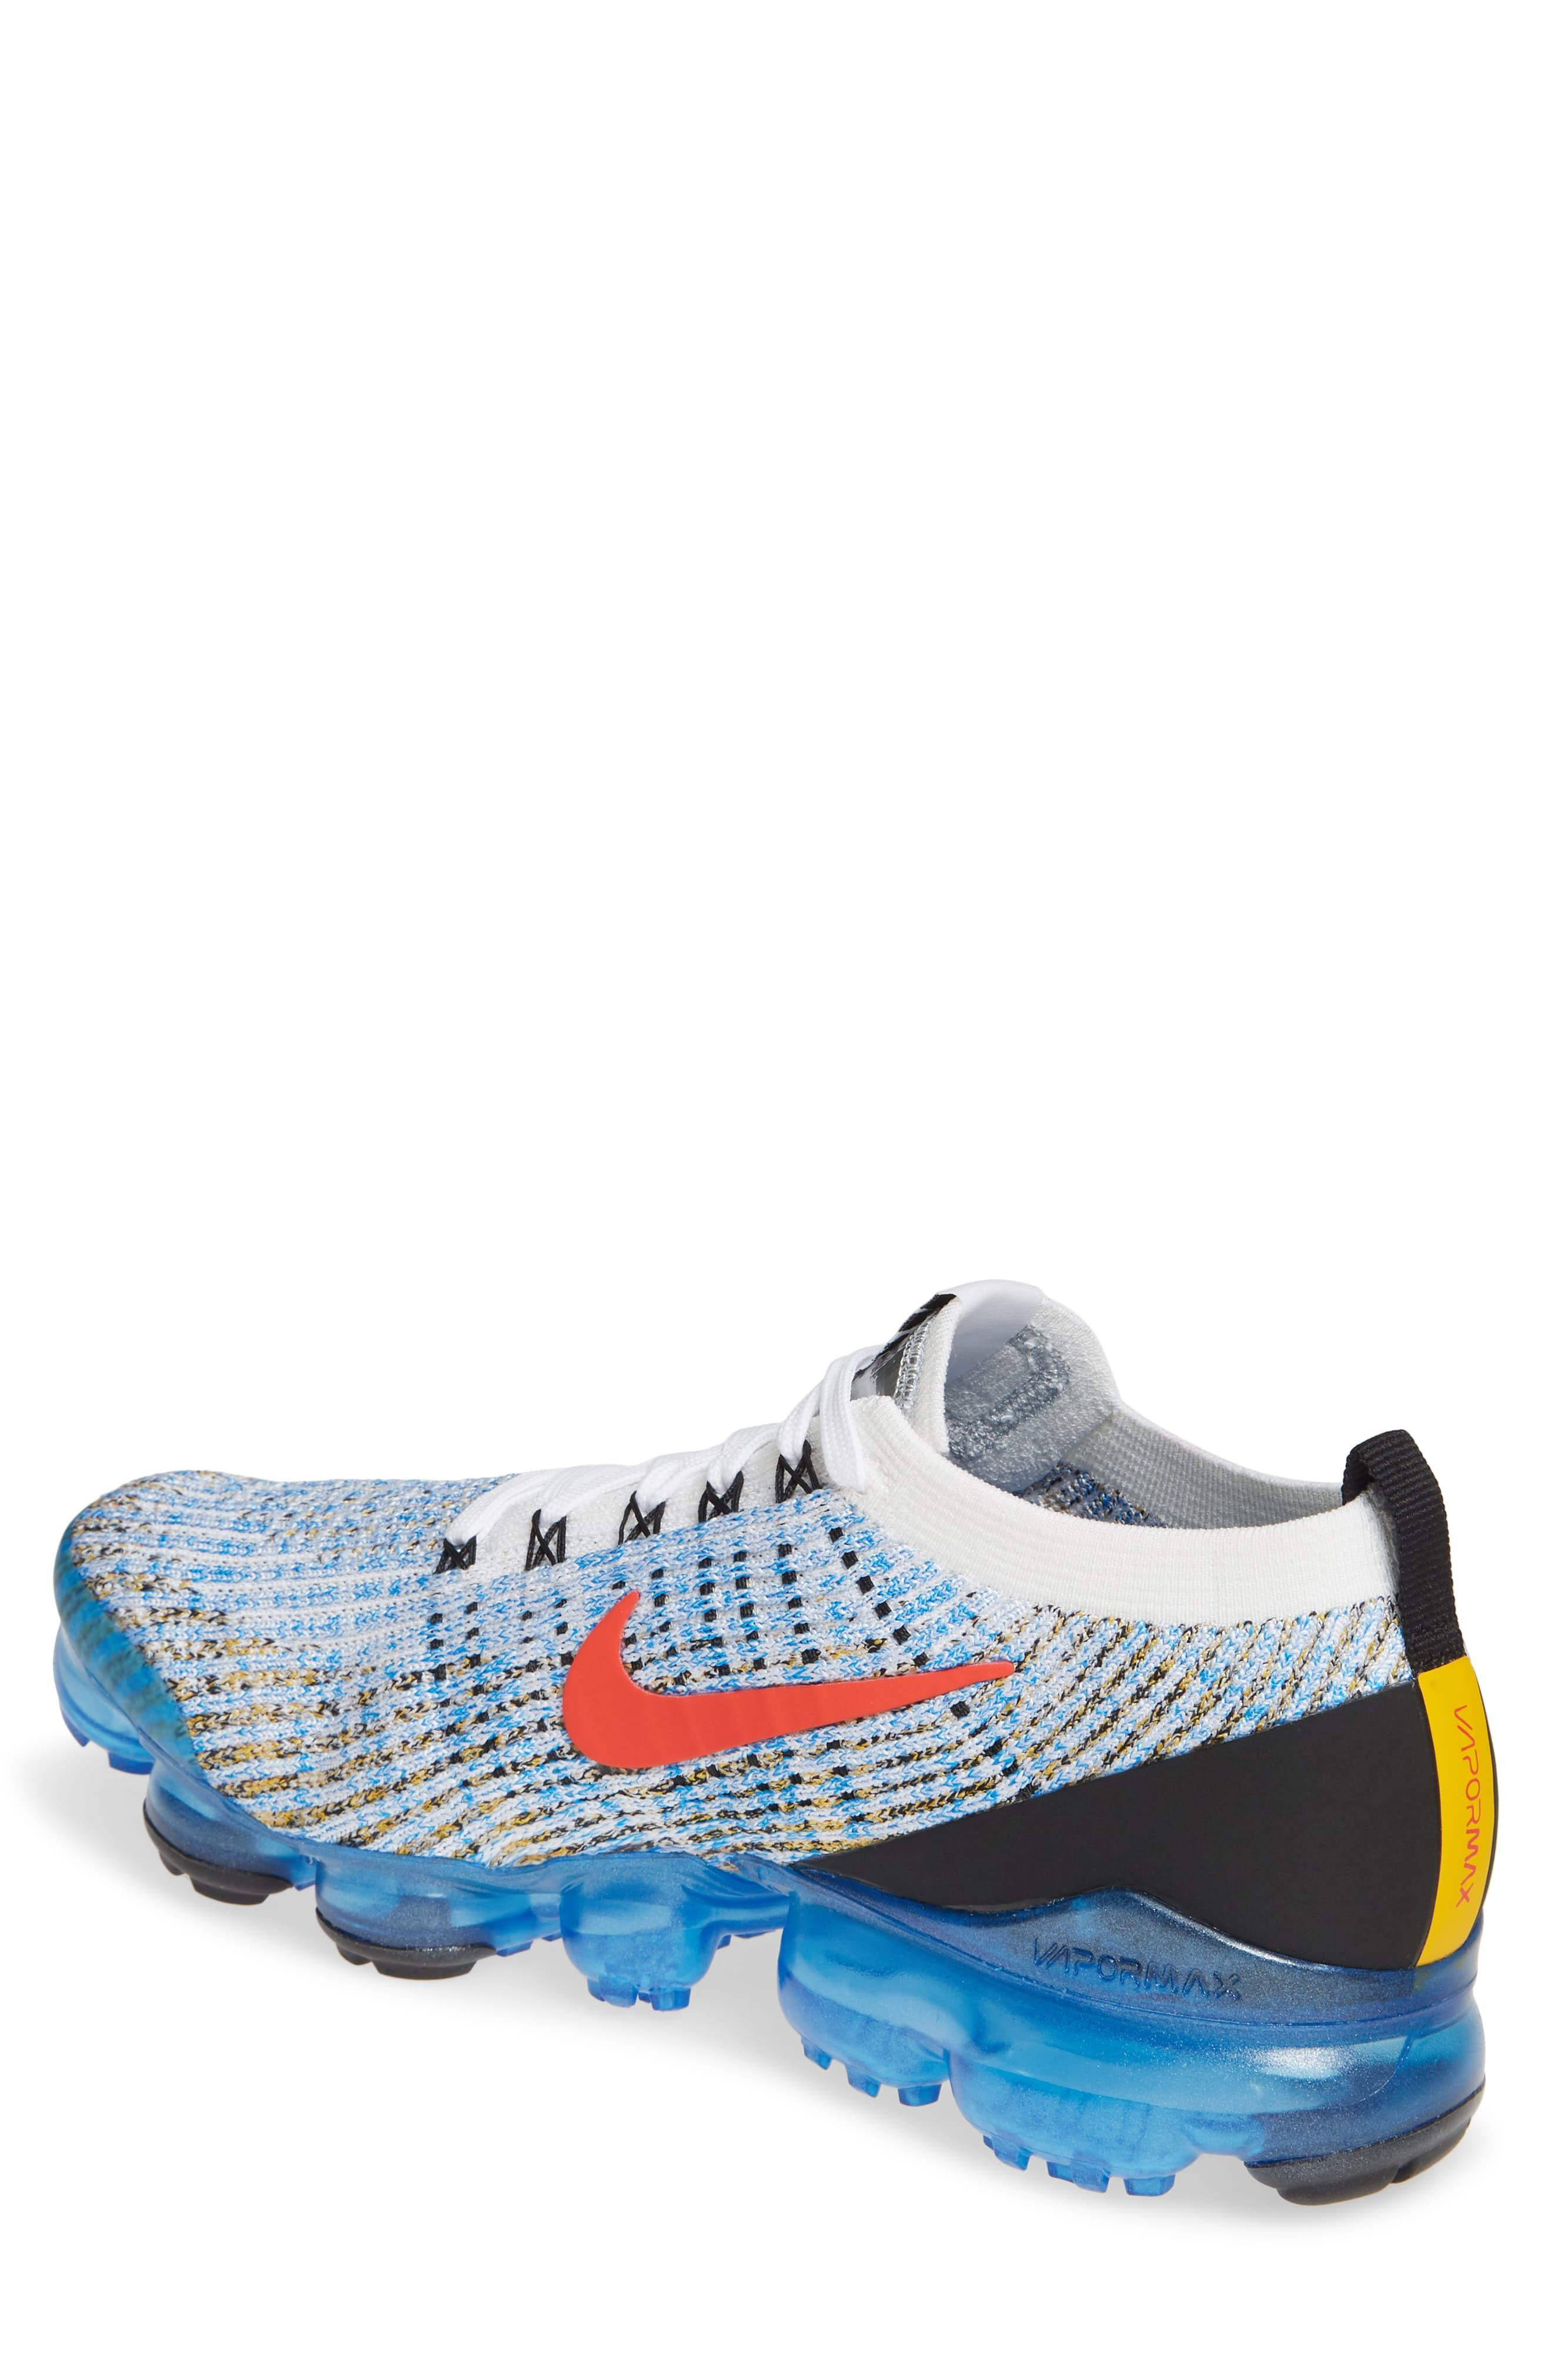 cueva El hotel erupción  Nike Synthetic Air Vapormax Flyknit 3 in White (Blue) for Men - Save 60% -  Lyst